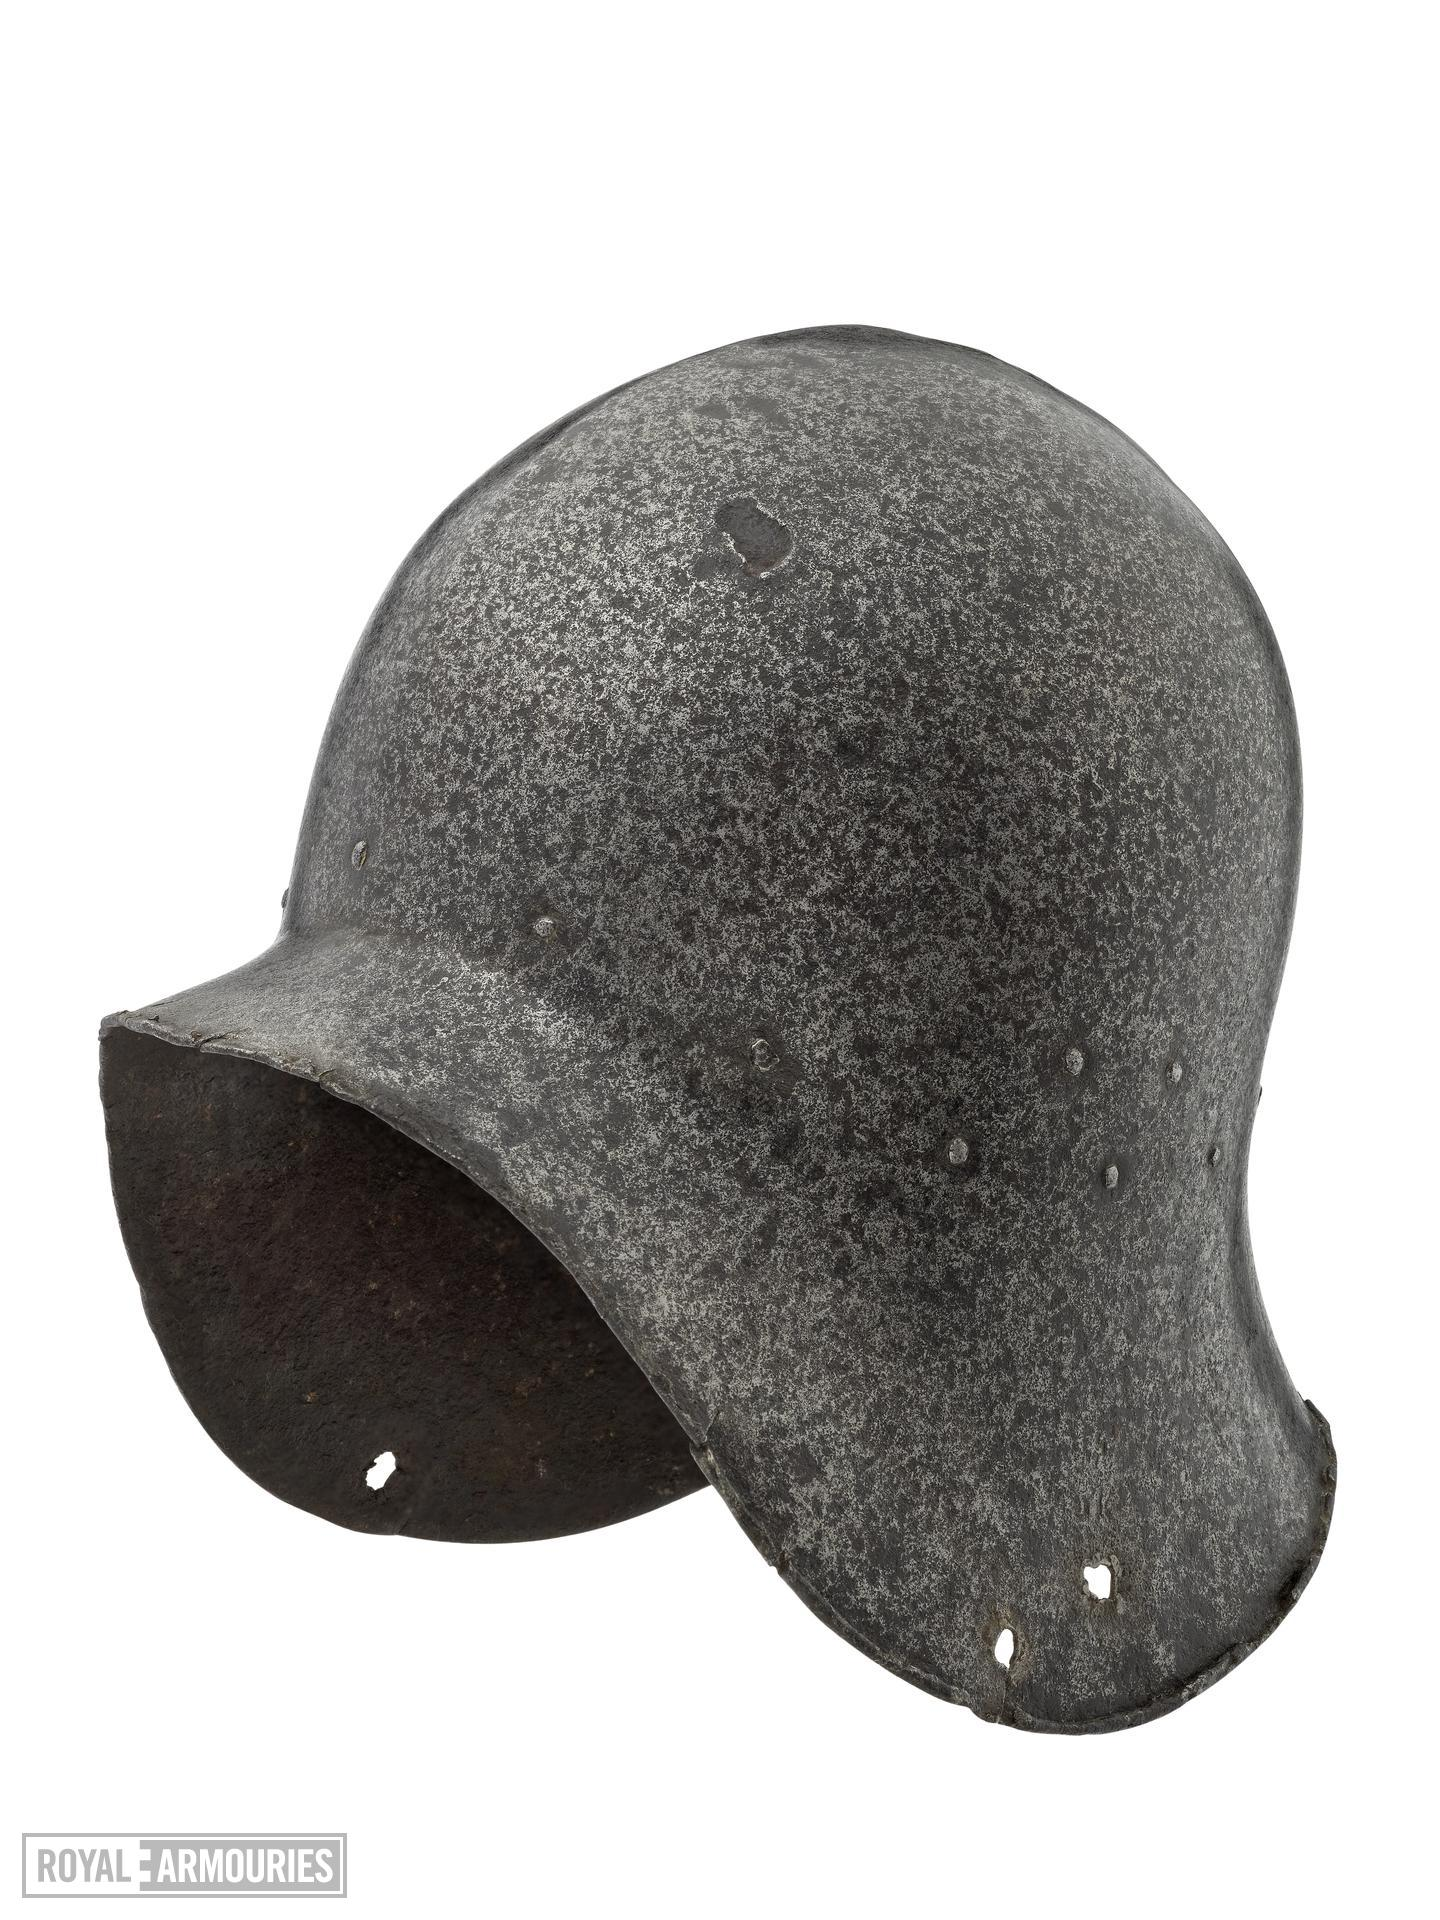 Sallet / Kettle hat